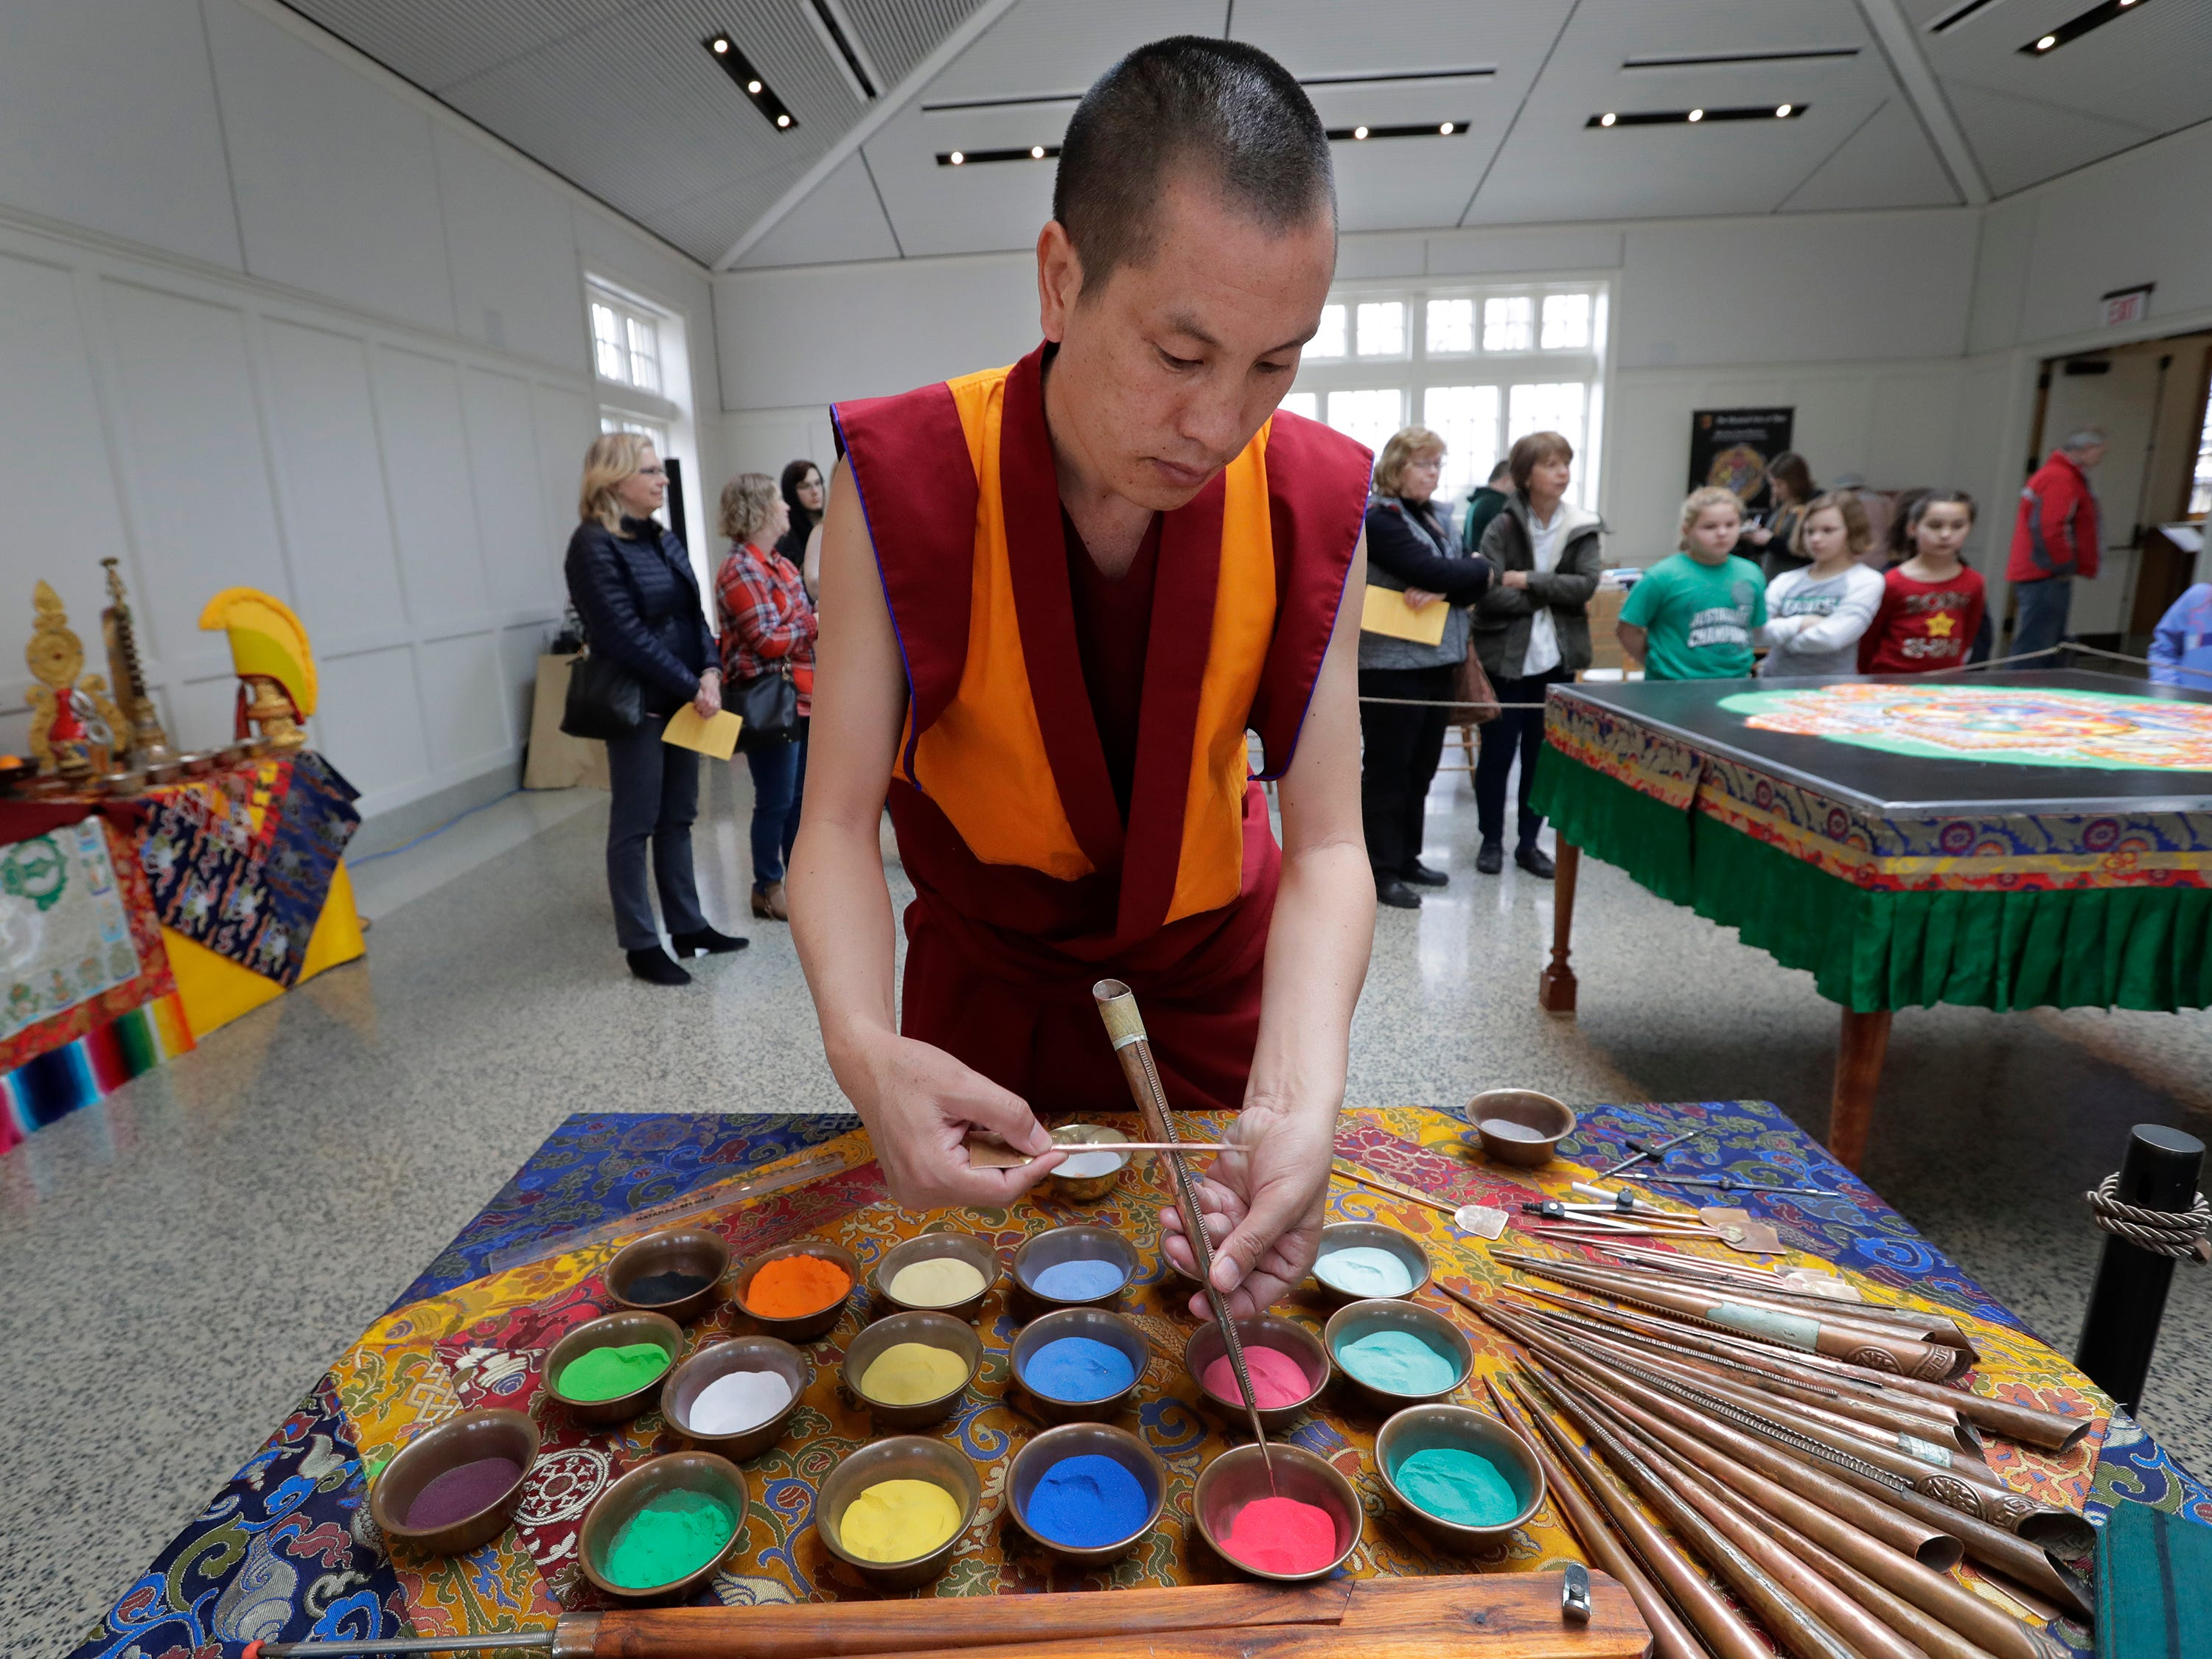 Lobsang Dorjee, a Buddhist monk from Drepung Loseling Monastery in south India, empties sand from a Chak-pur tool while creating a Mandala Thursday Thursday, March 21, 2019, at The Paine Art Center and Gardens in Oshkosh, Wis. Dan Powers/USA TODAY NETWORK-Wisconsin